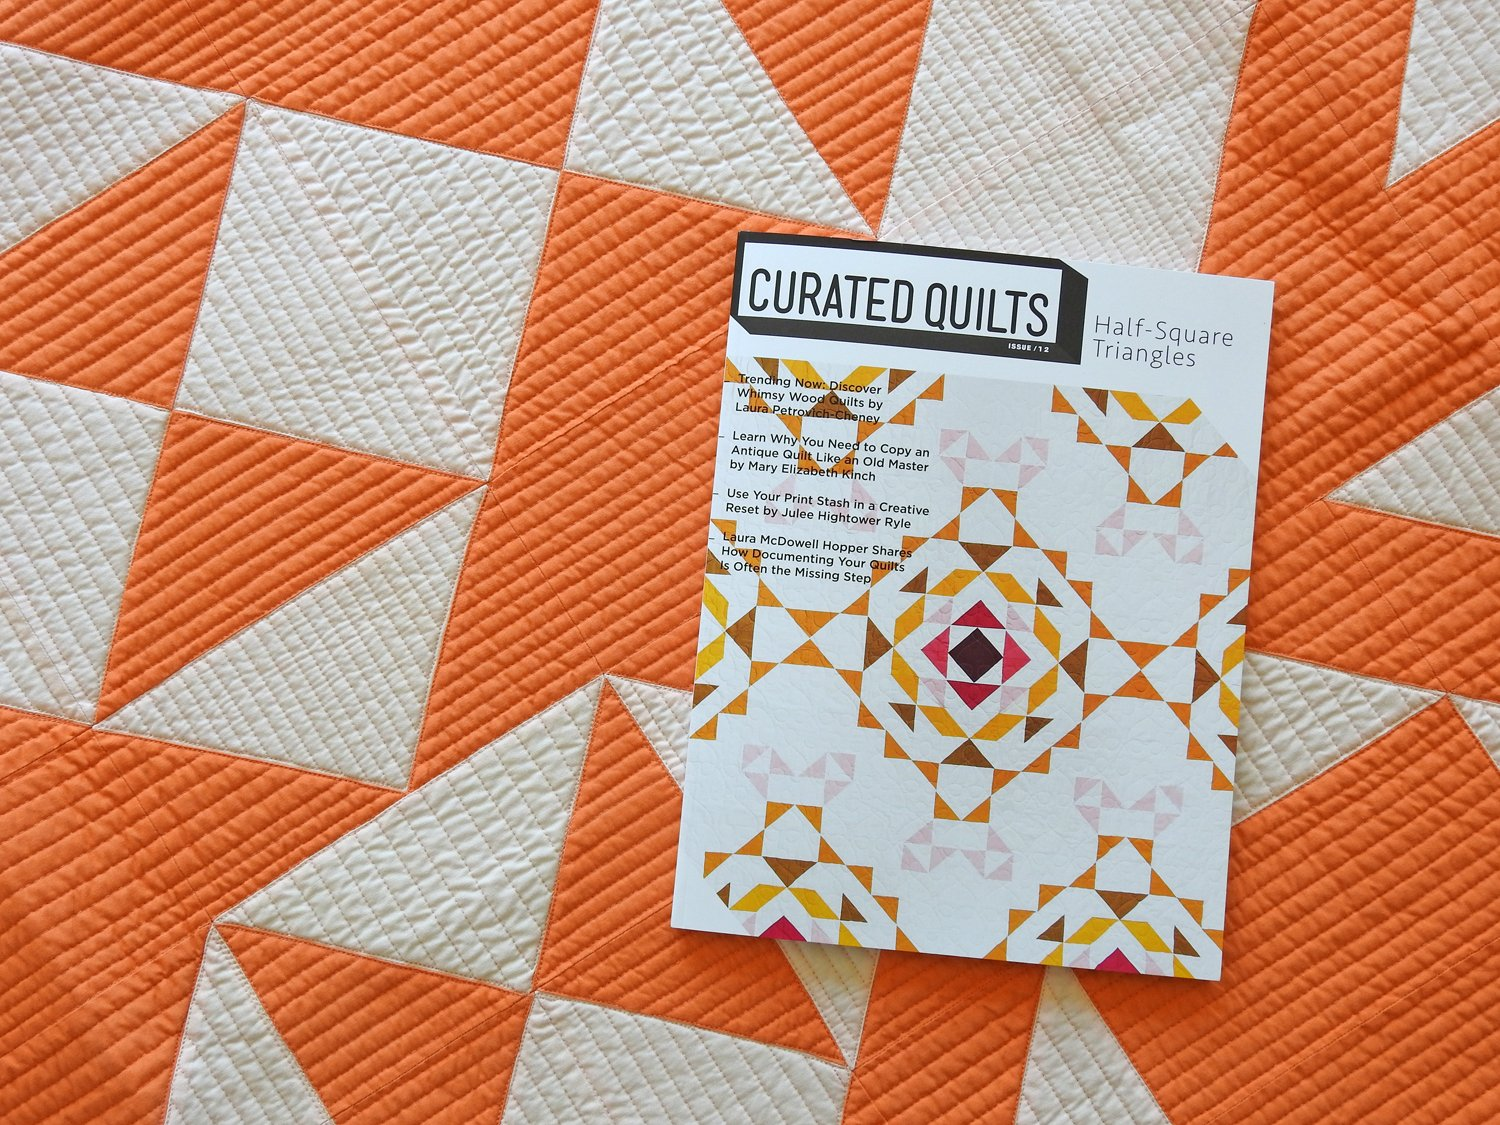 Curated Quilts - Half-Square Triangles